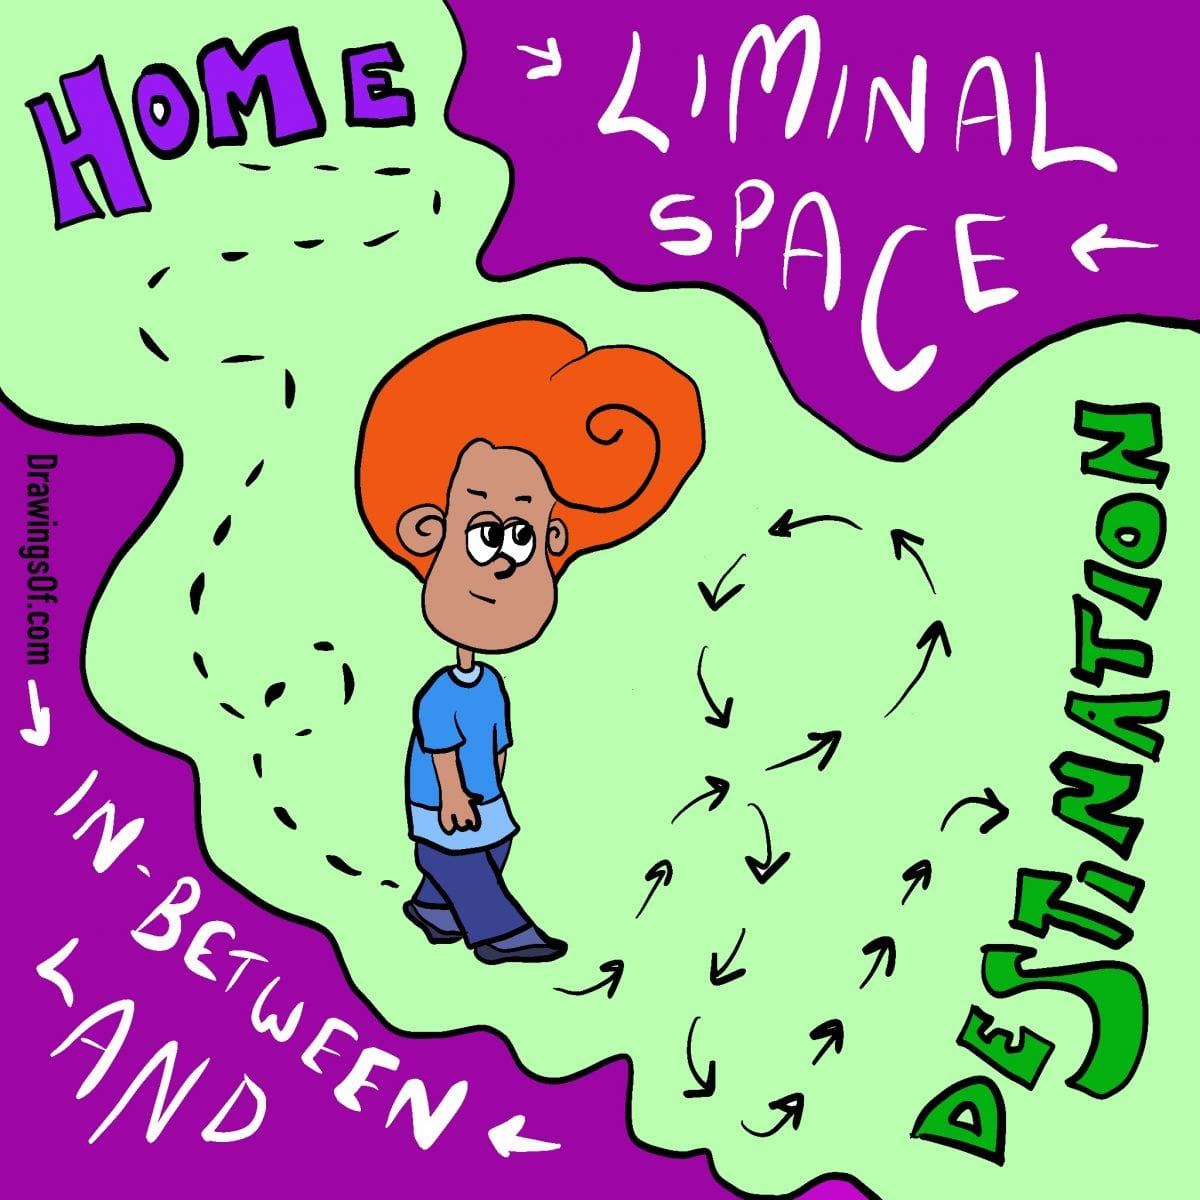 Liminal space definition cartoon lesson about location and travel.